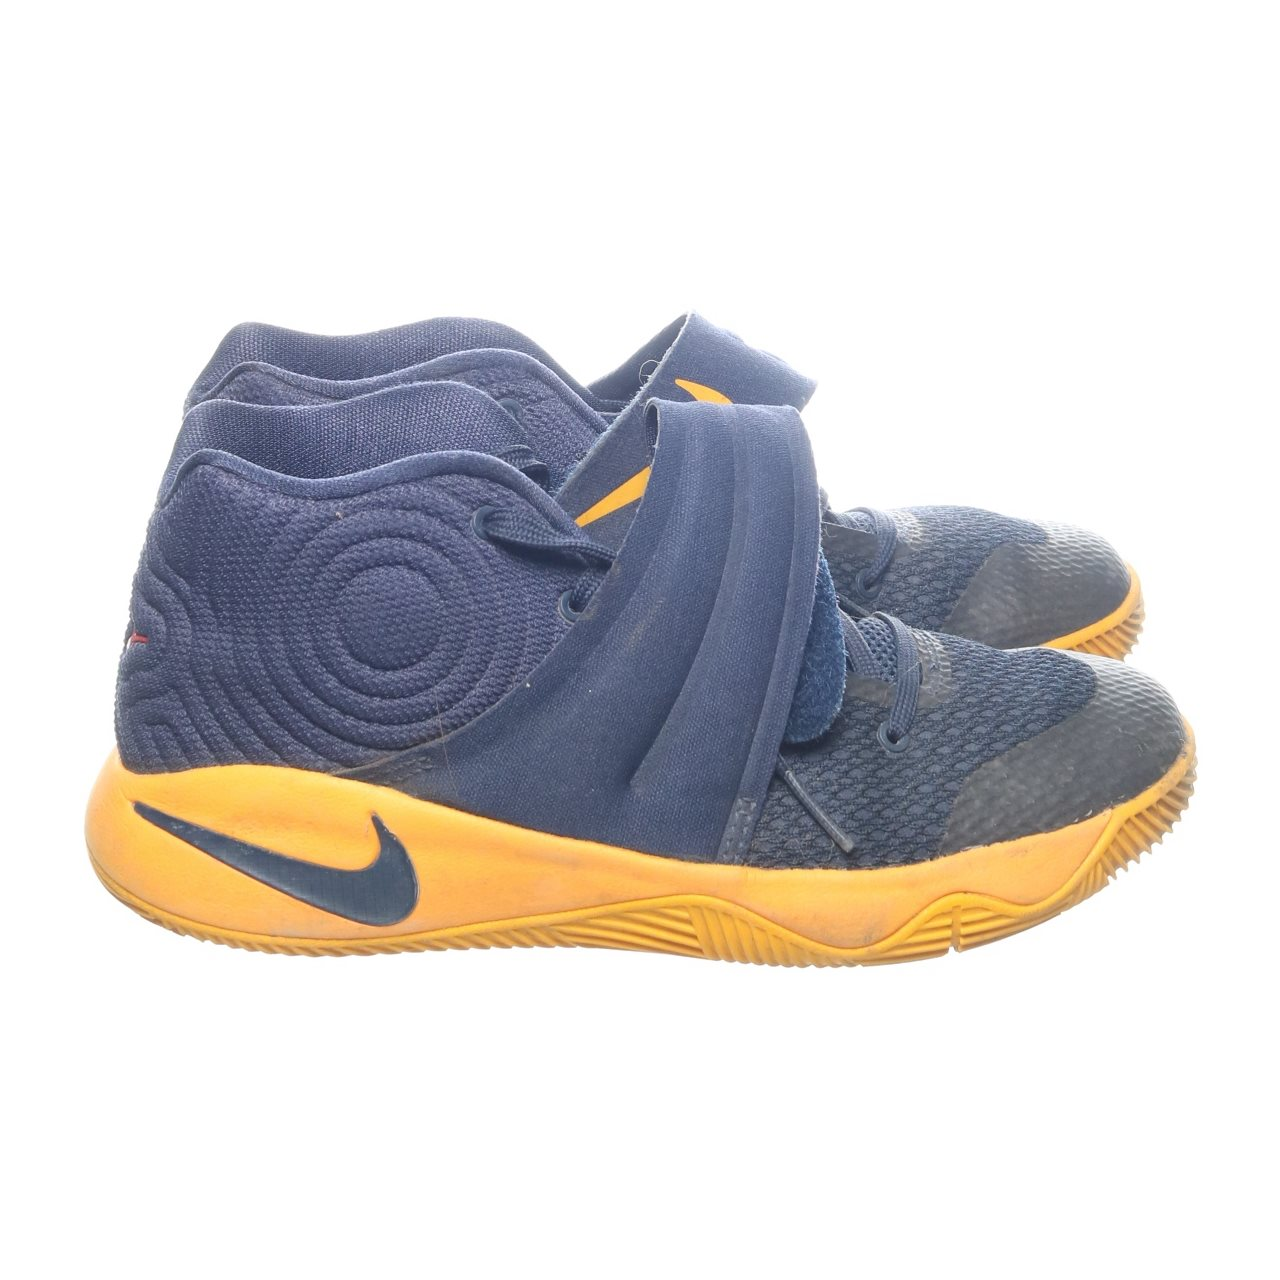 separation shoes 7fbff 48cbe ... canada nike sneakers strl 34 kyrie irving blå gul 2facb 84c4d